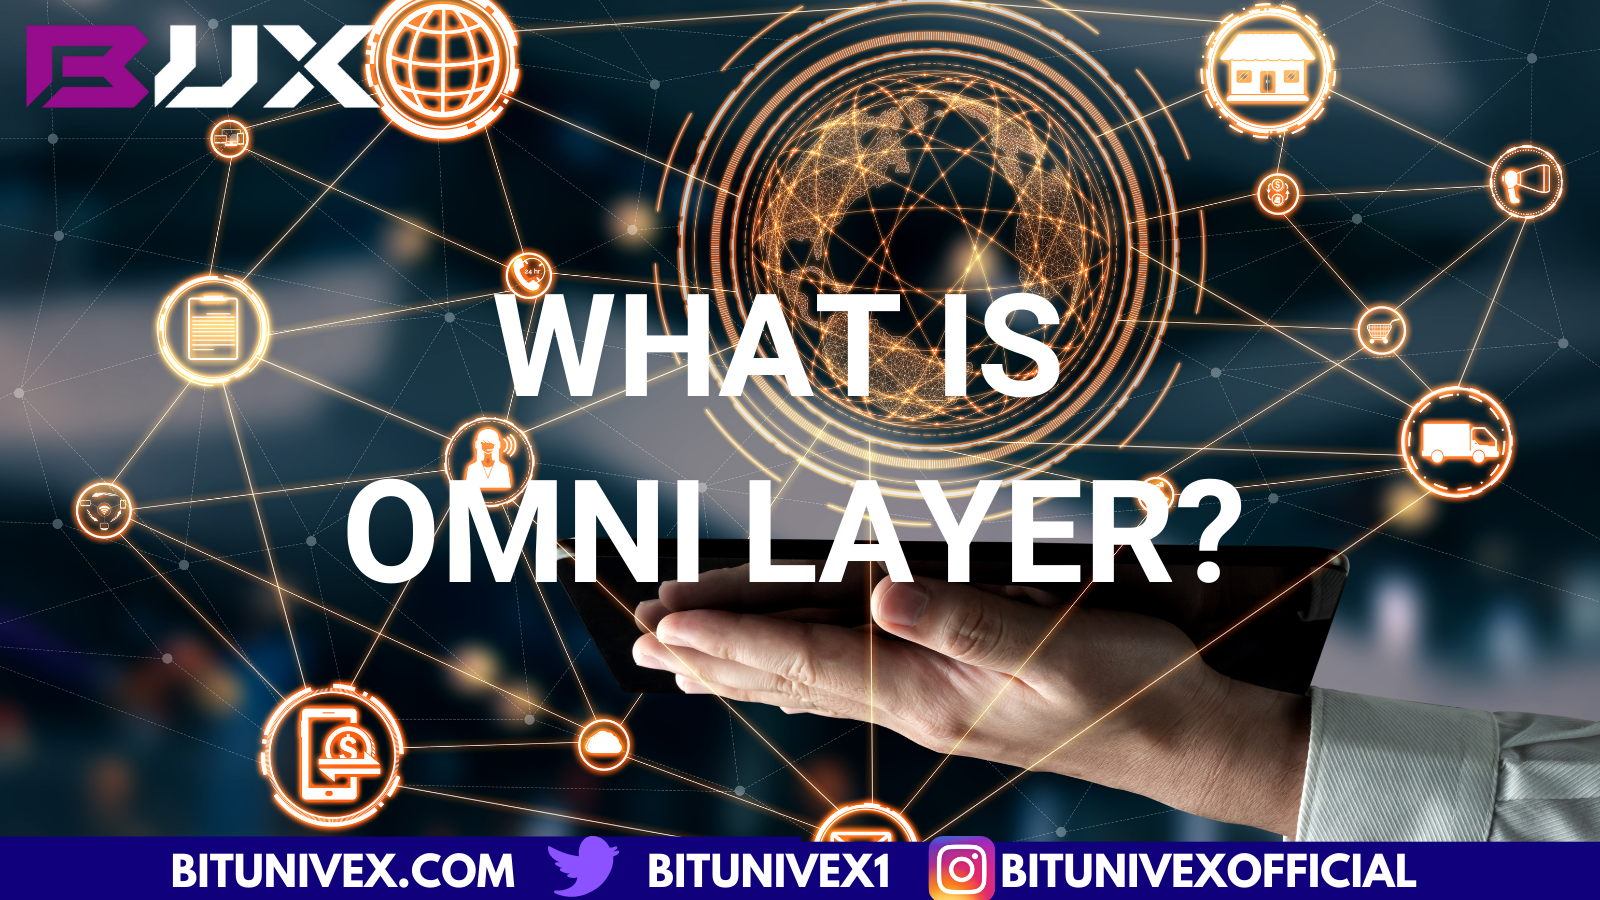 What is Omni Layer?